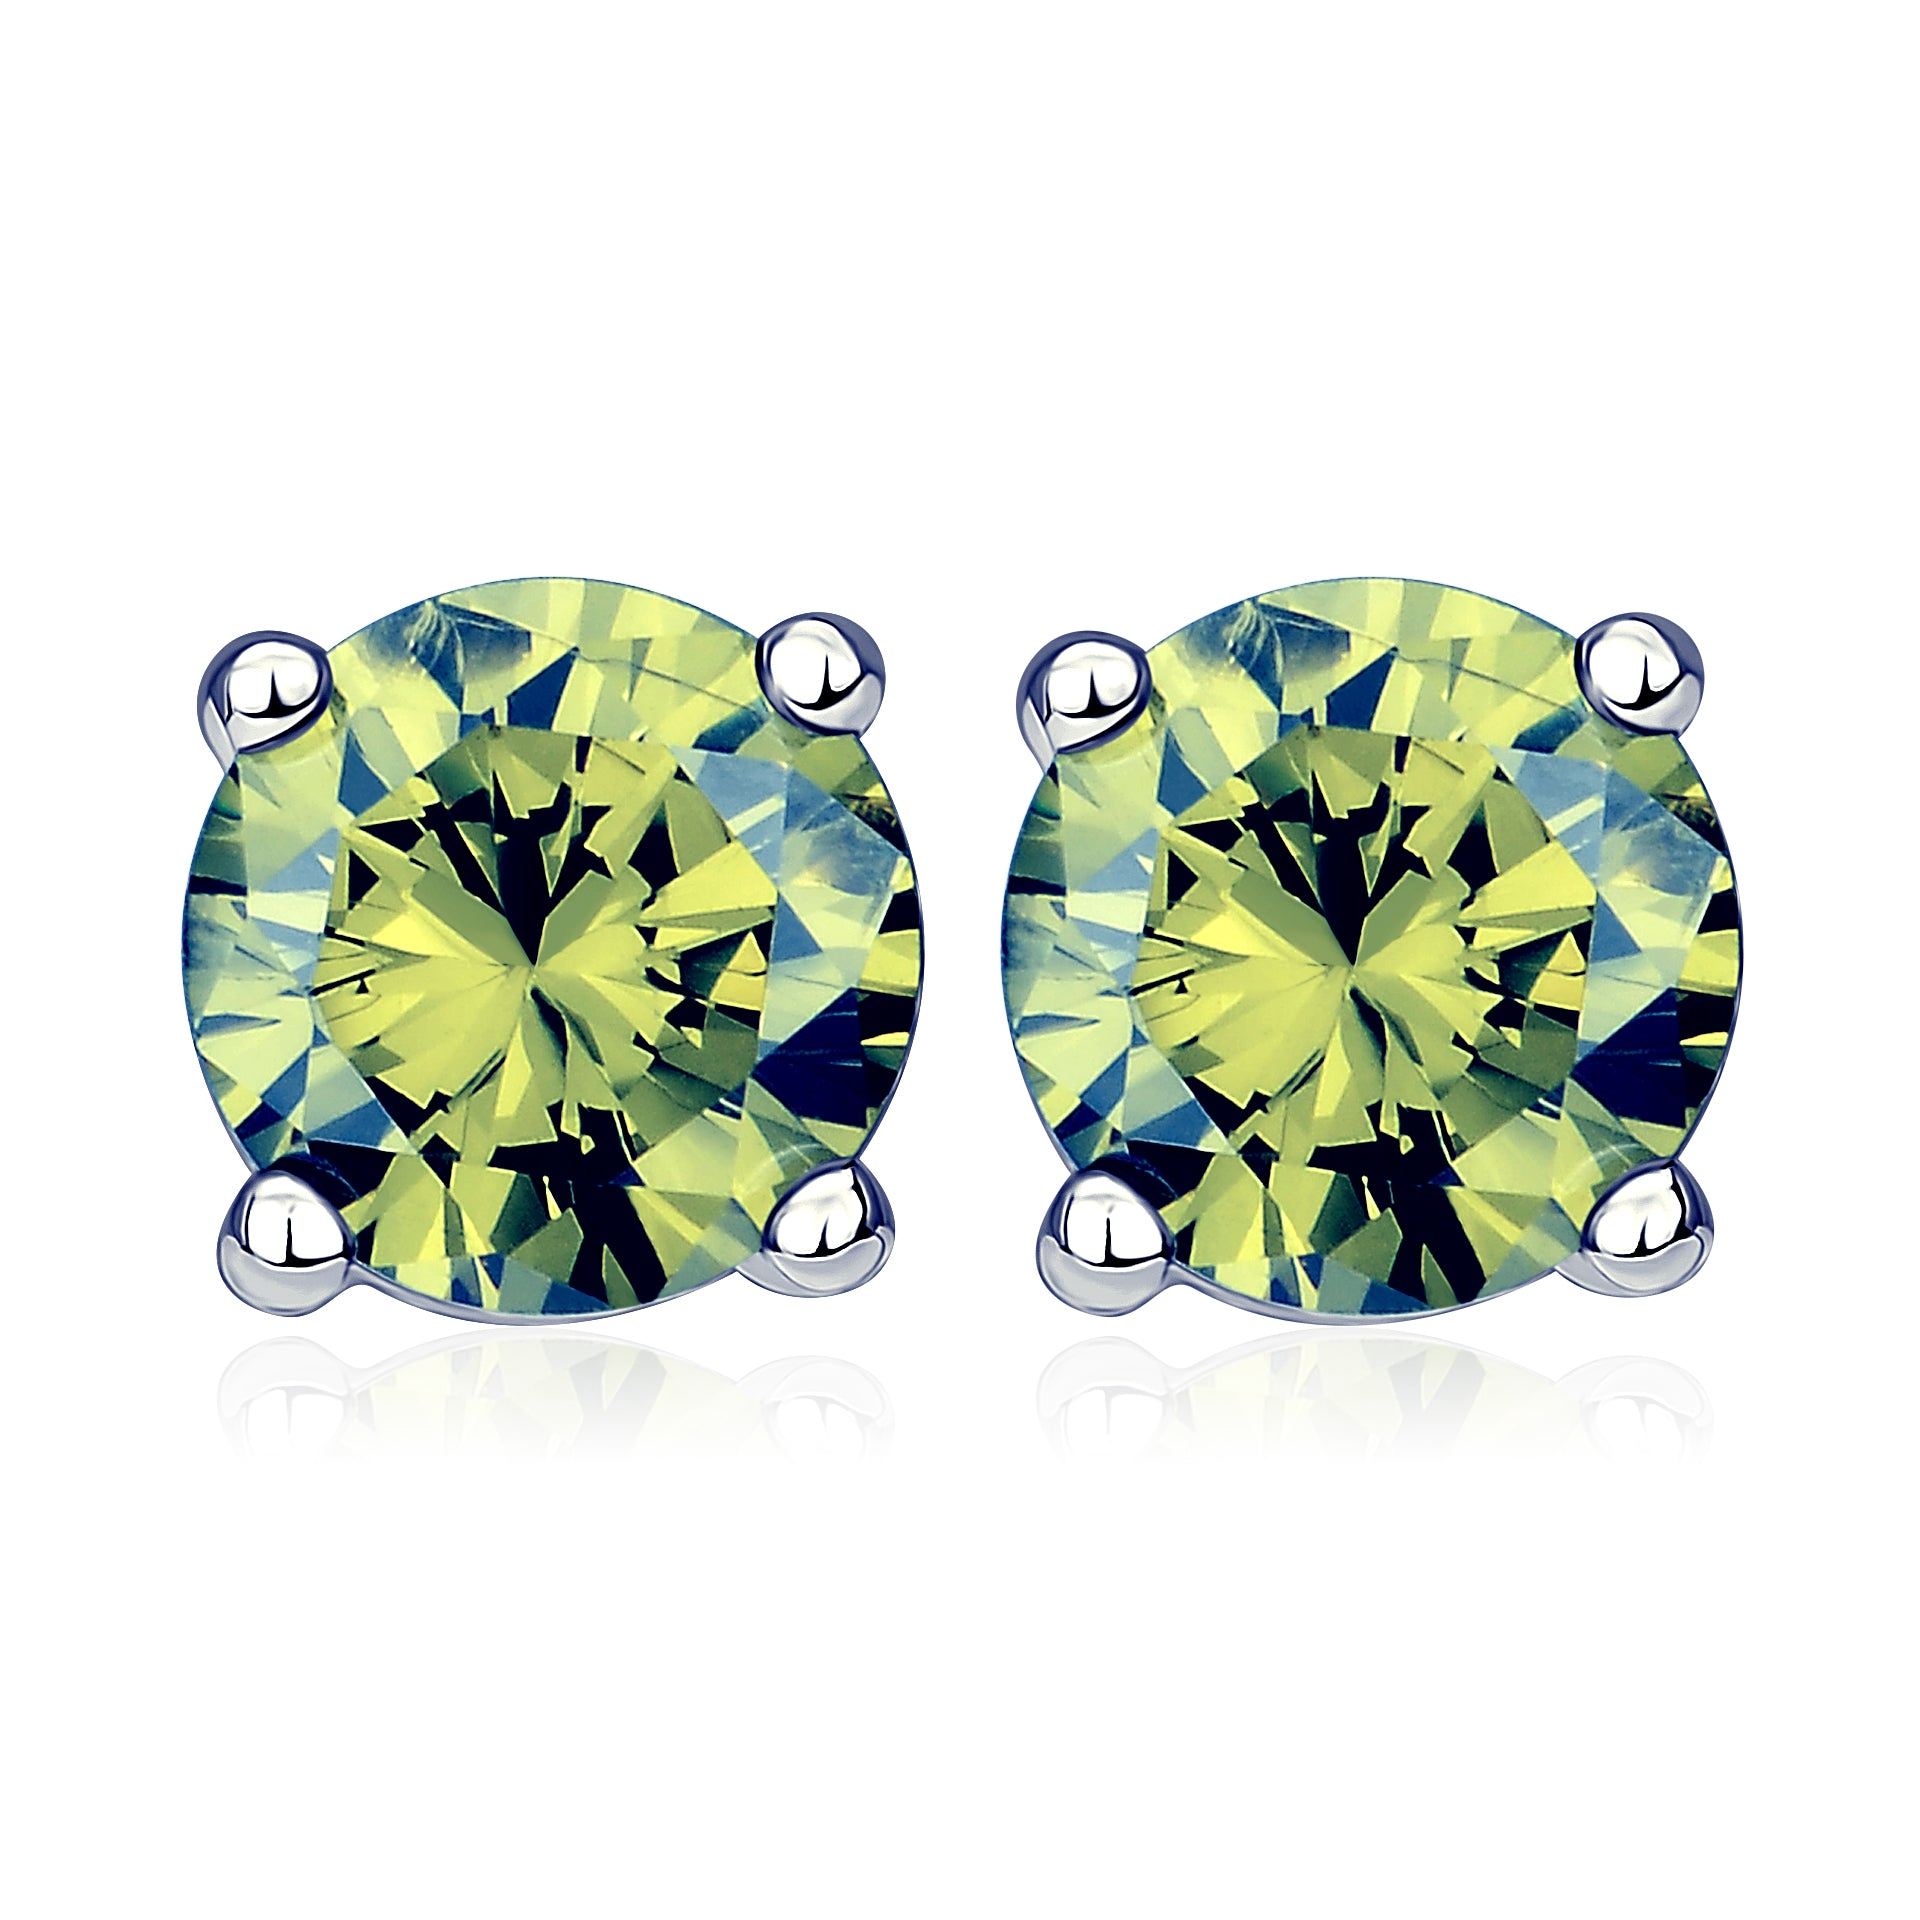 Big Crystal Stud Earrings Design Simple Cheap Popular Silver Earrings